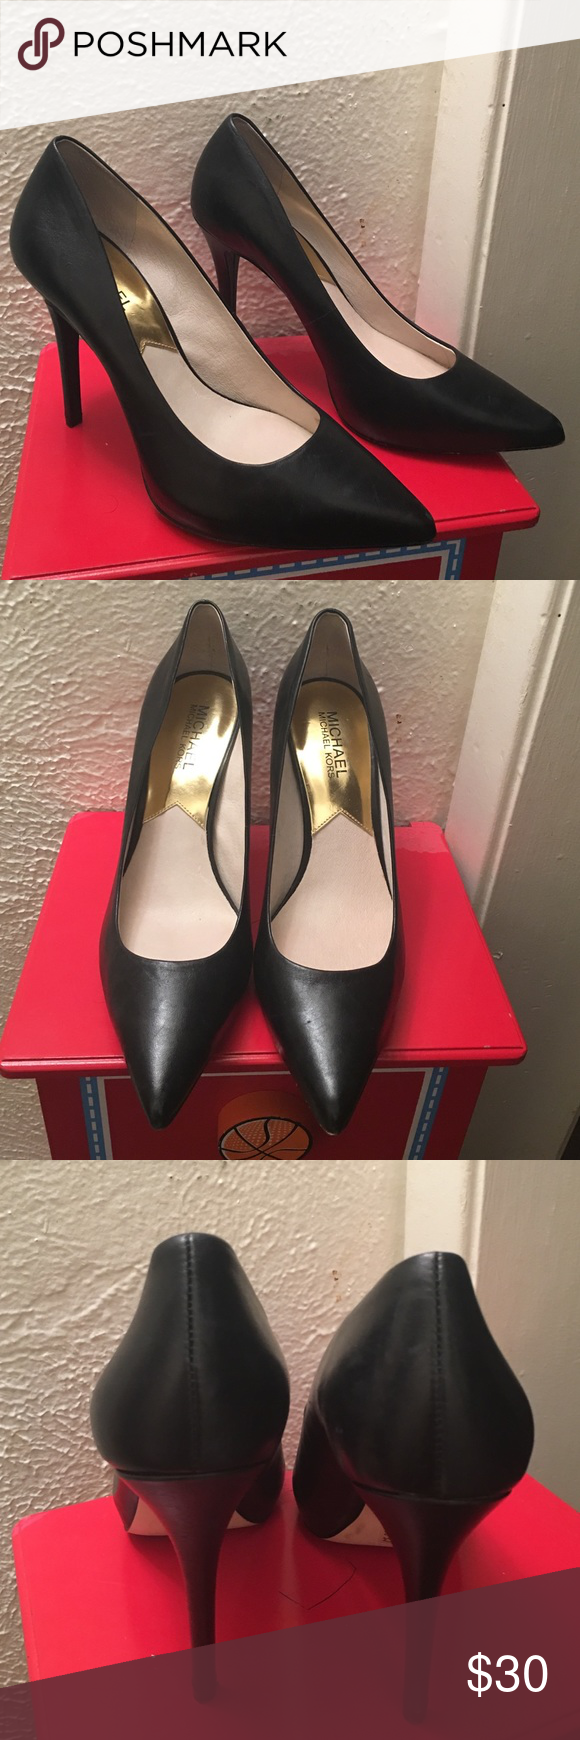 Michael Kors shoes size 6.5 used